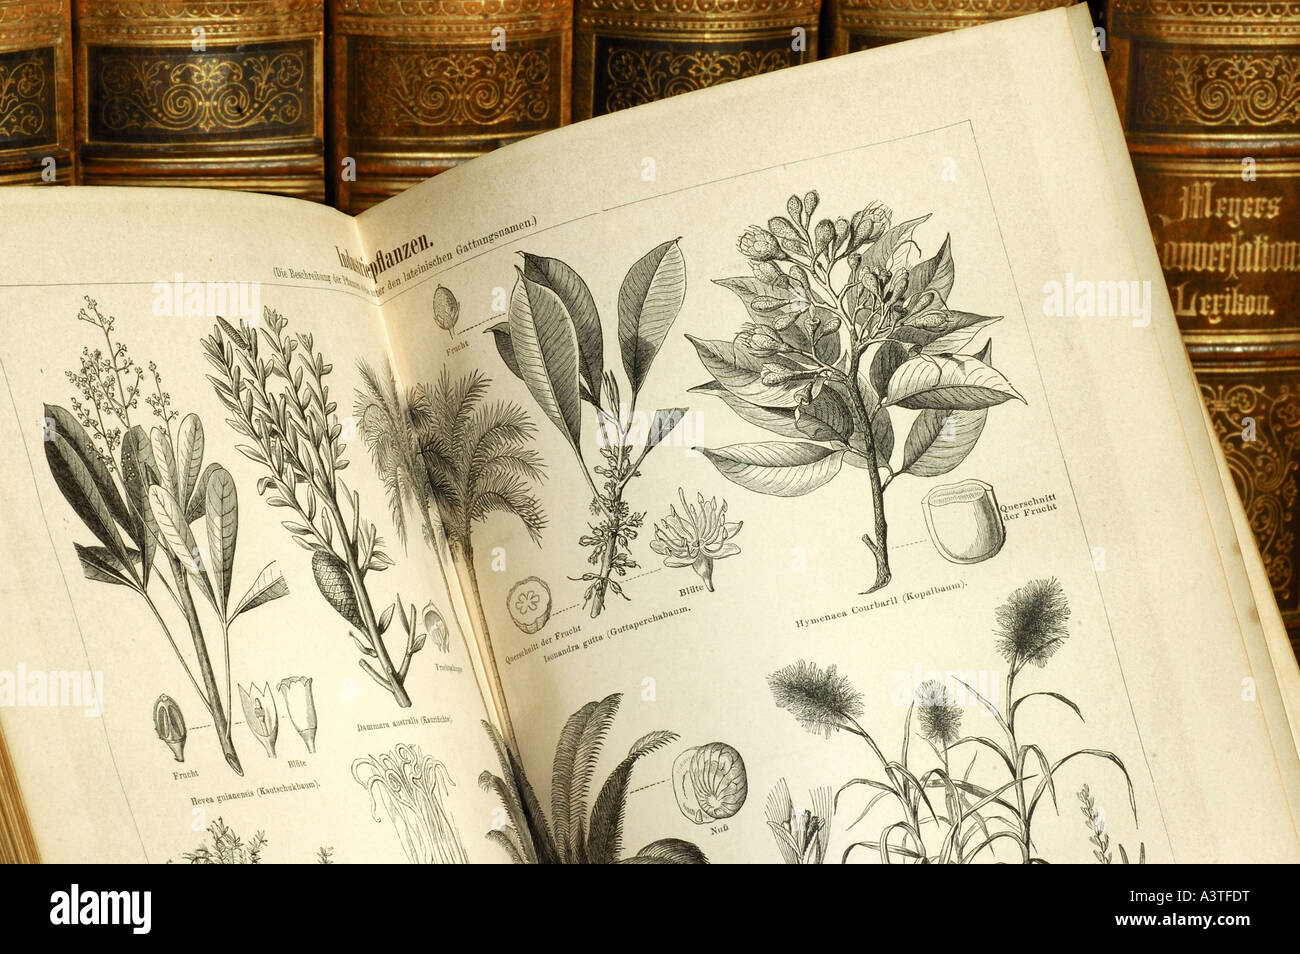 Illustrations of useful plants in a volume of an old edition of Meyers lexicon - Stock Image